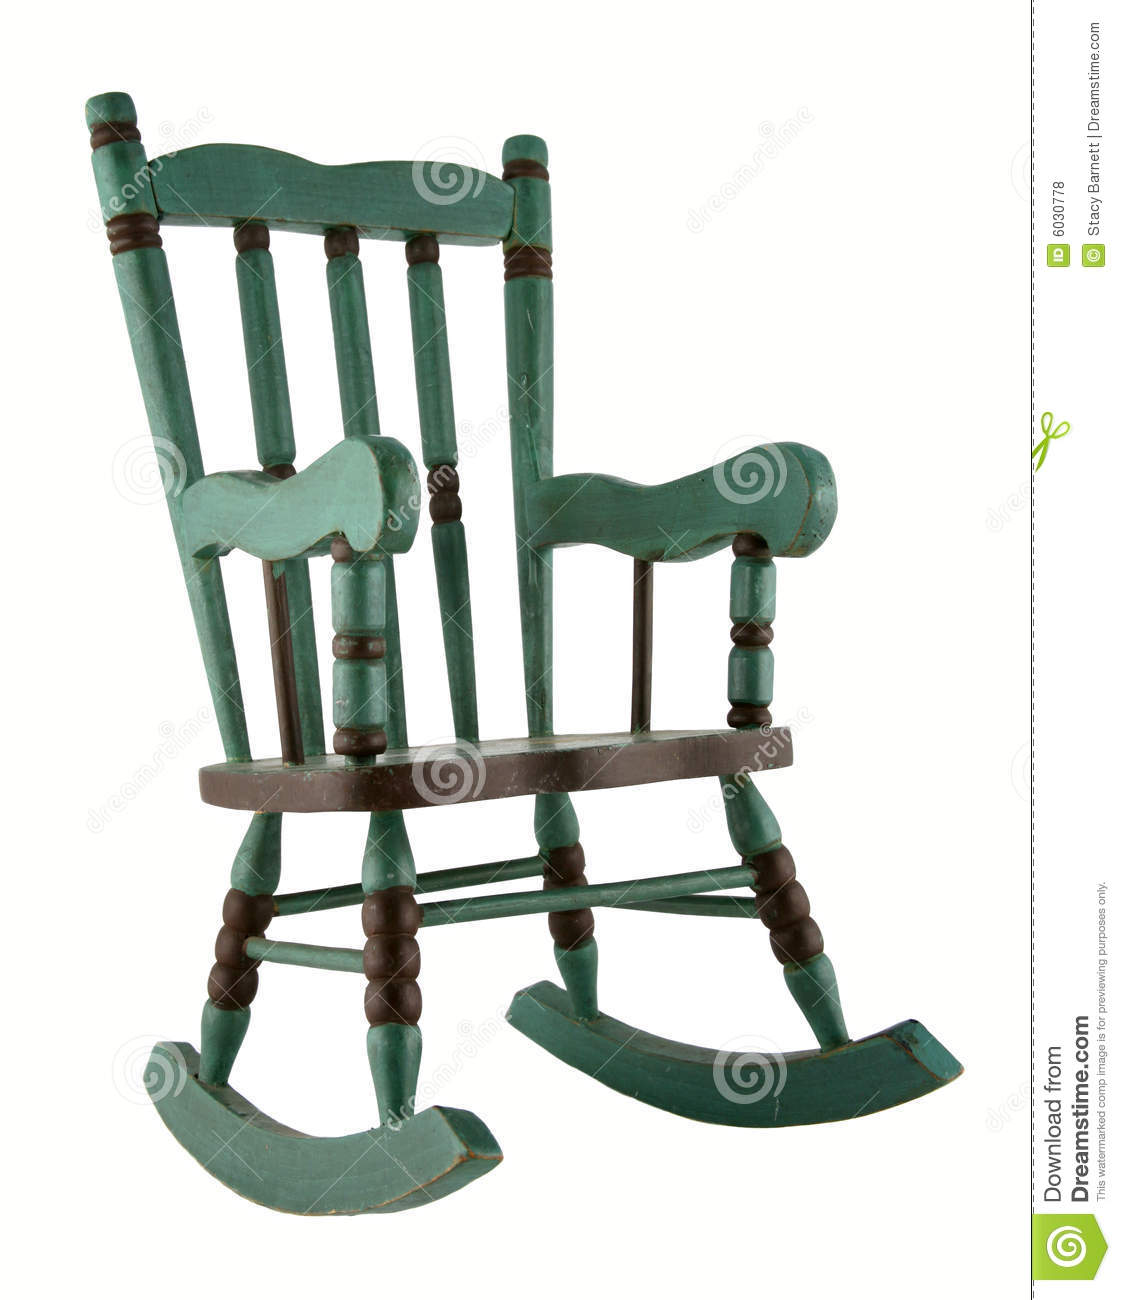 green rocking chair windsor arm chairs royalty free stock photos image 6030778